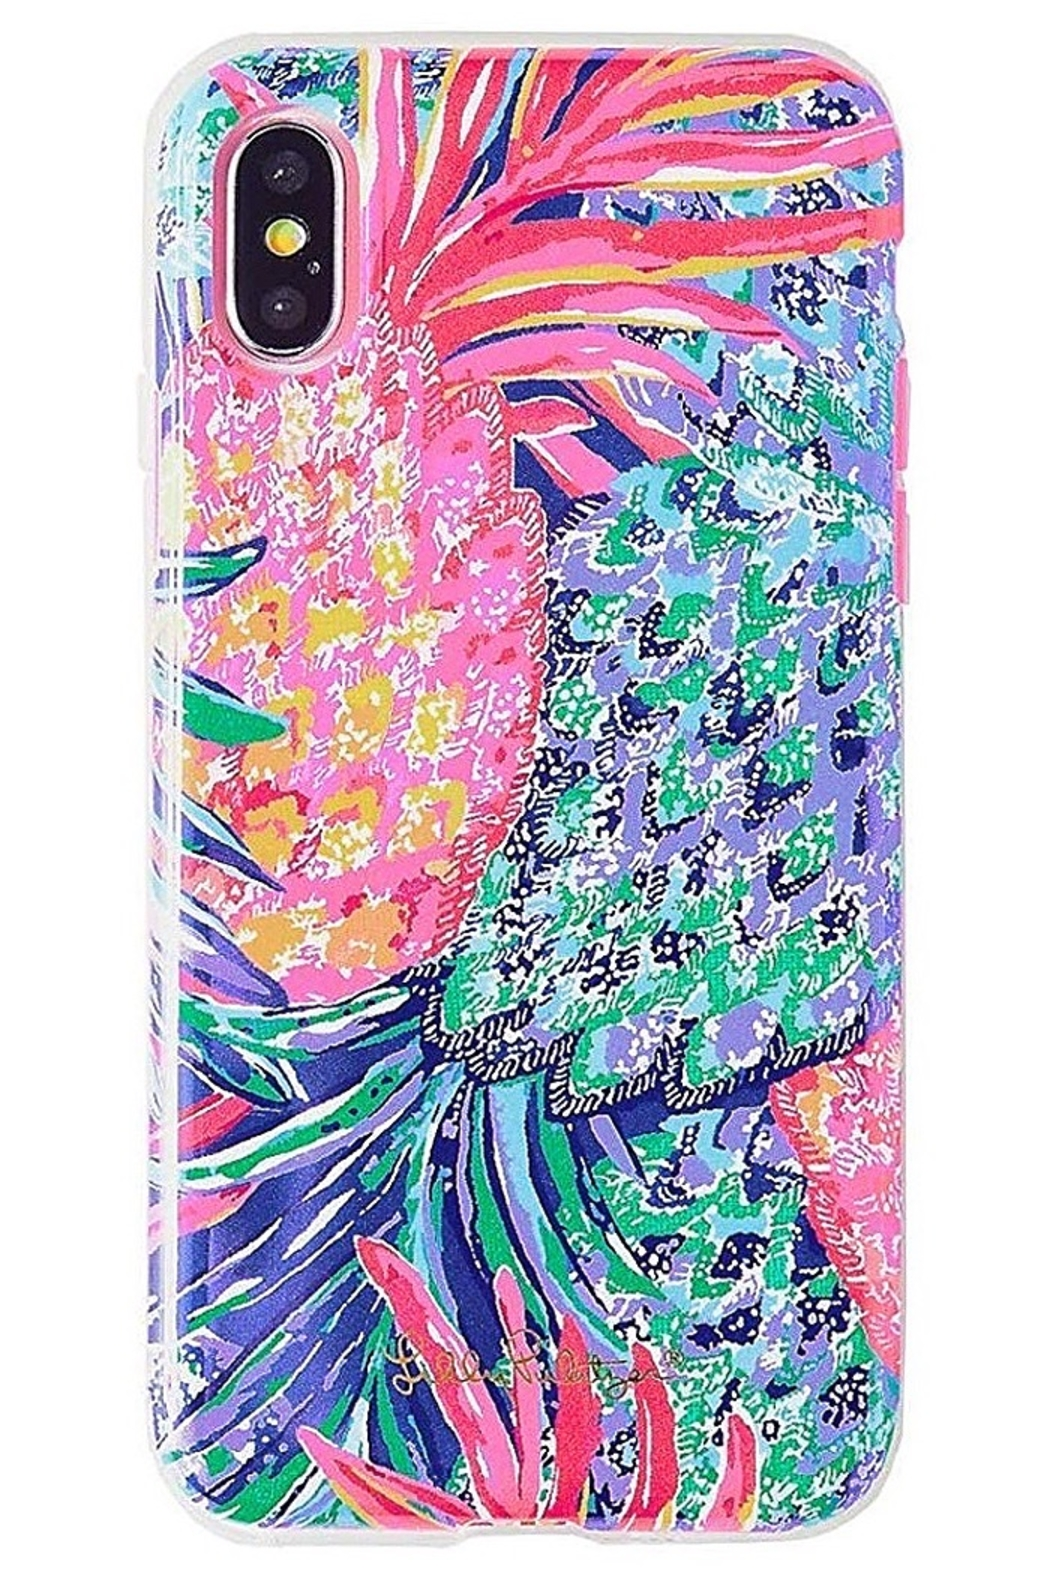 Lilly Pulitzer iPhone 7 Cover SPARKLING SANDS/GYPSET PARADISE - Front Cropped Image